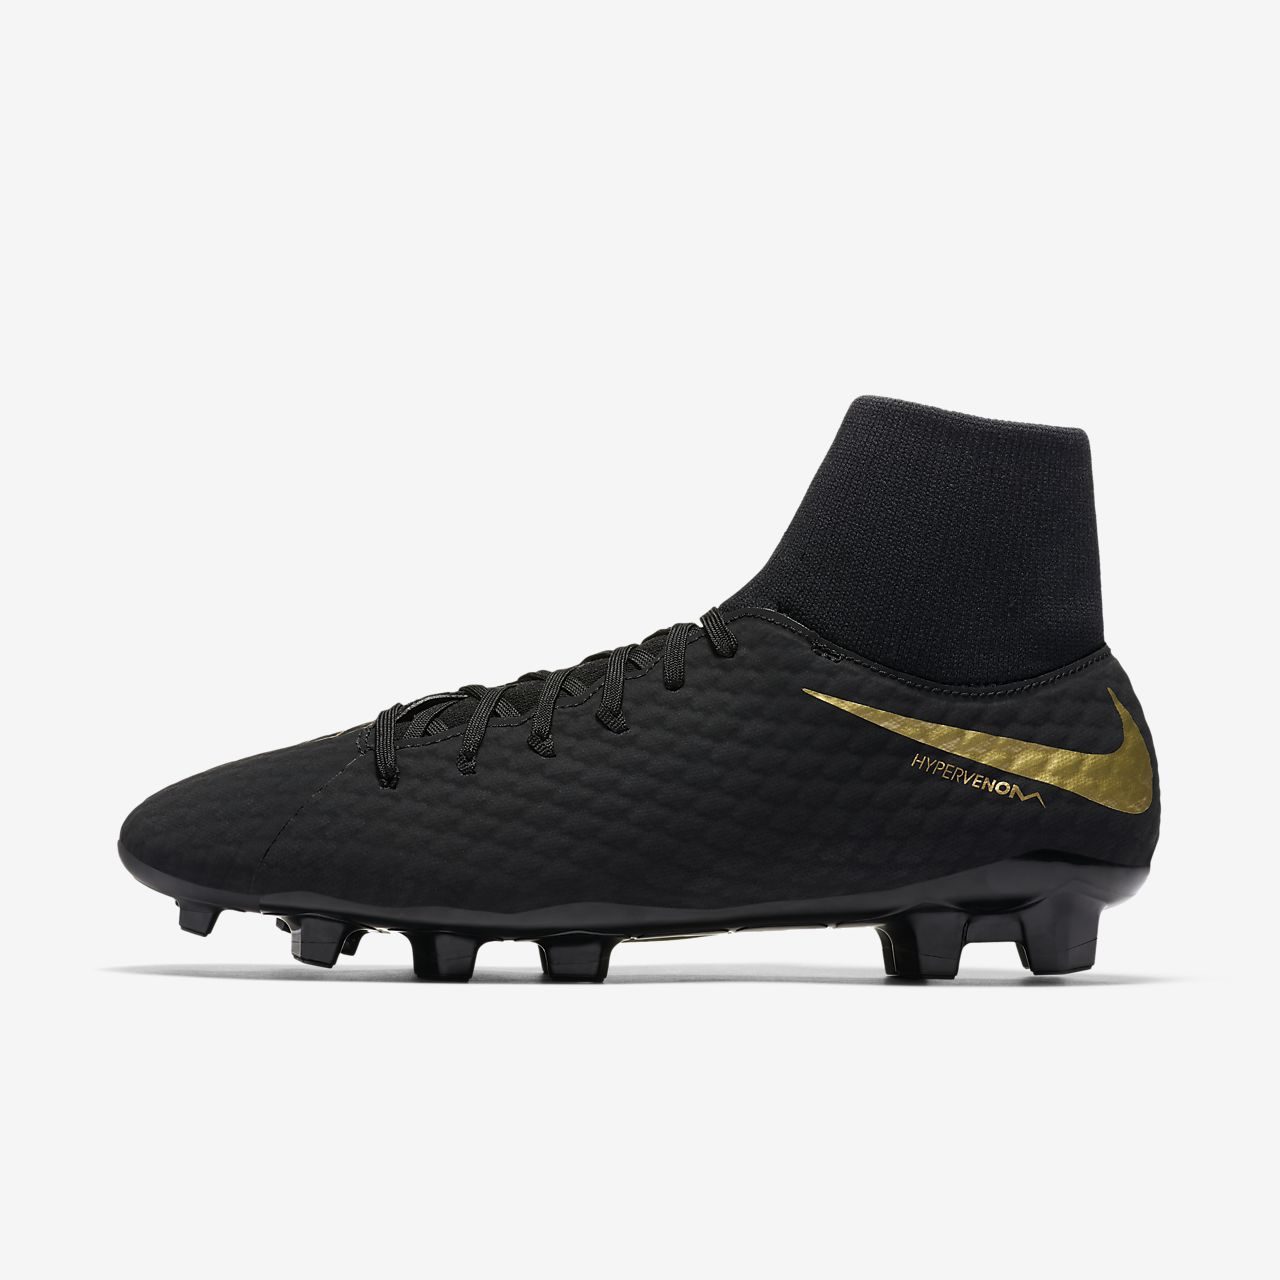 Nike Hypervenom Phantom III Academy Dynamic Fit FG FirmGround Soccer  Cleat